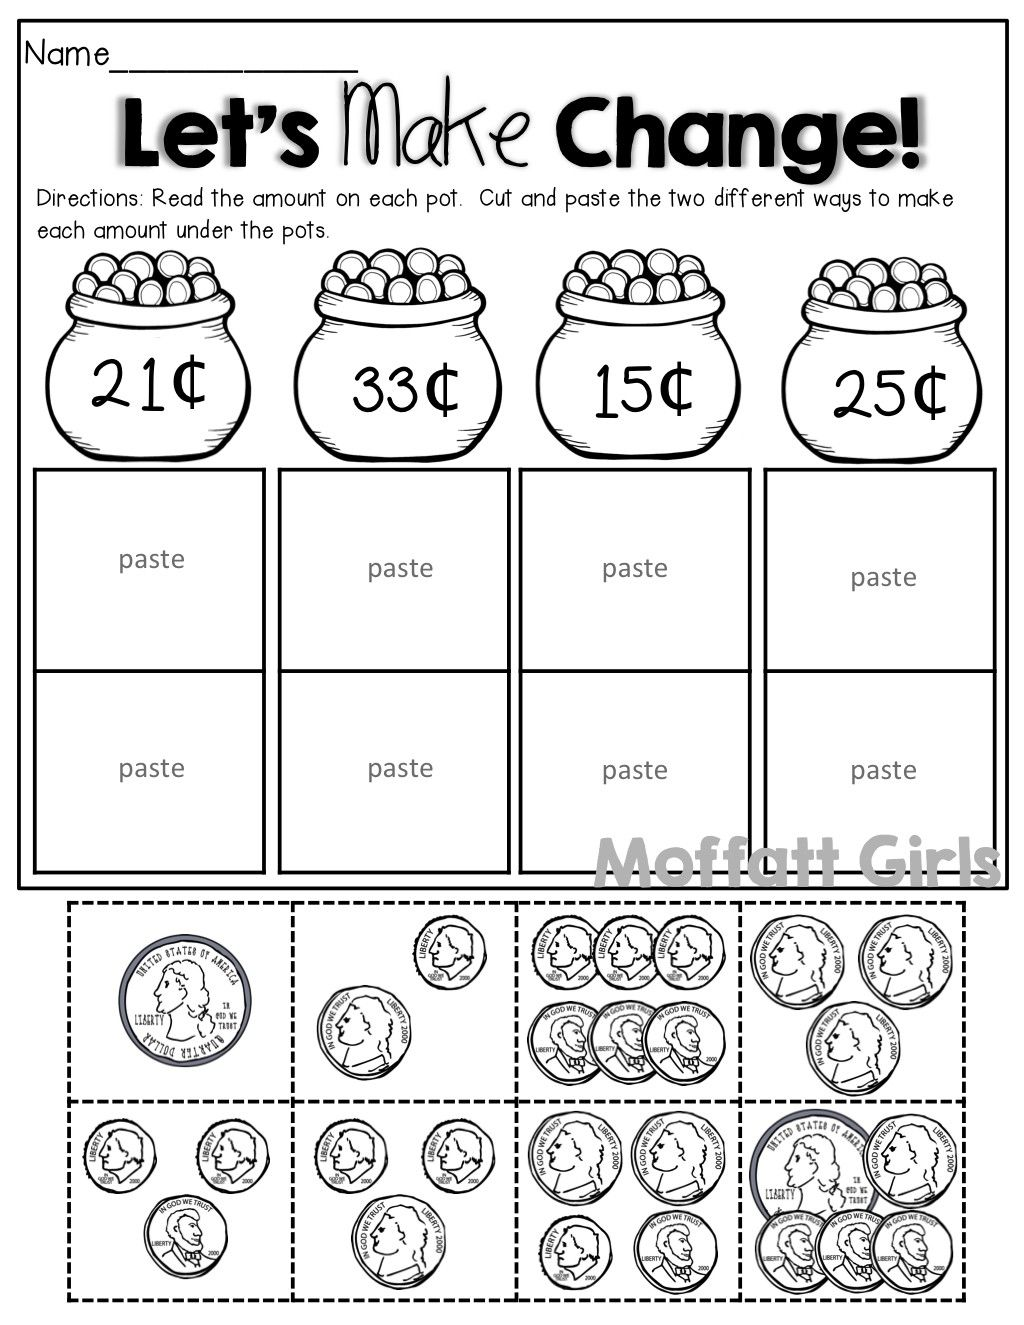 4 Worksheet Free Math Worksheets Second Grade 2 Counting Money Counting  Money Canadian Nickel...   First grade math [ 1325 x 1024 Pixel ]